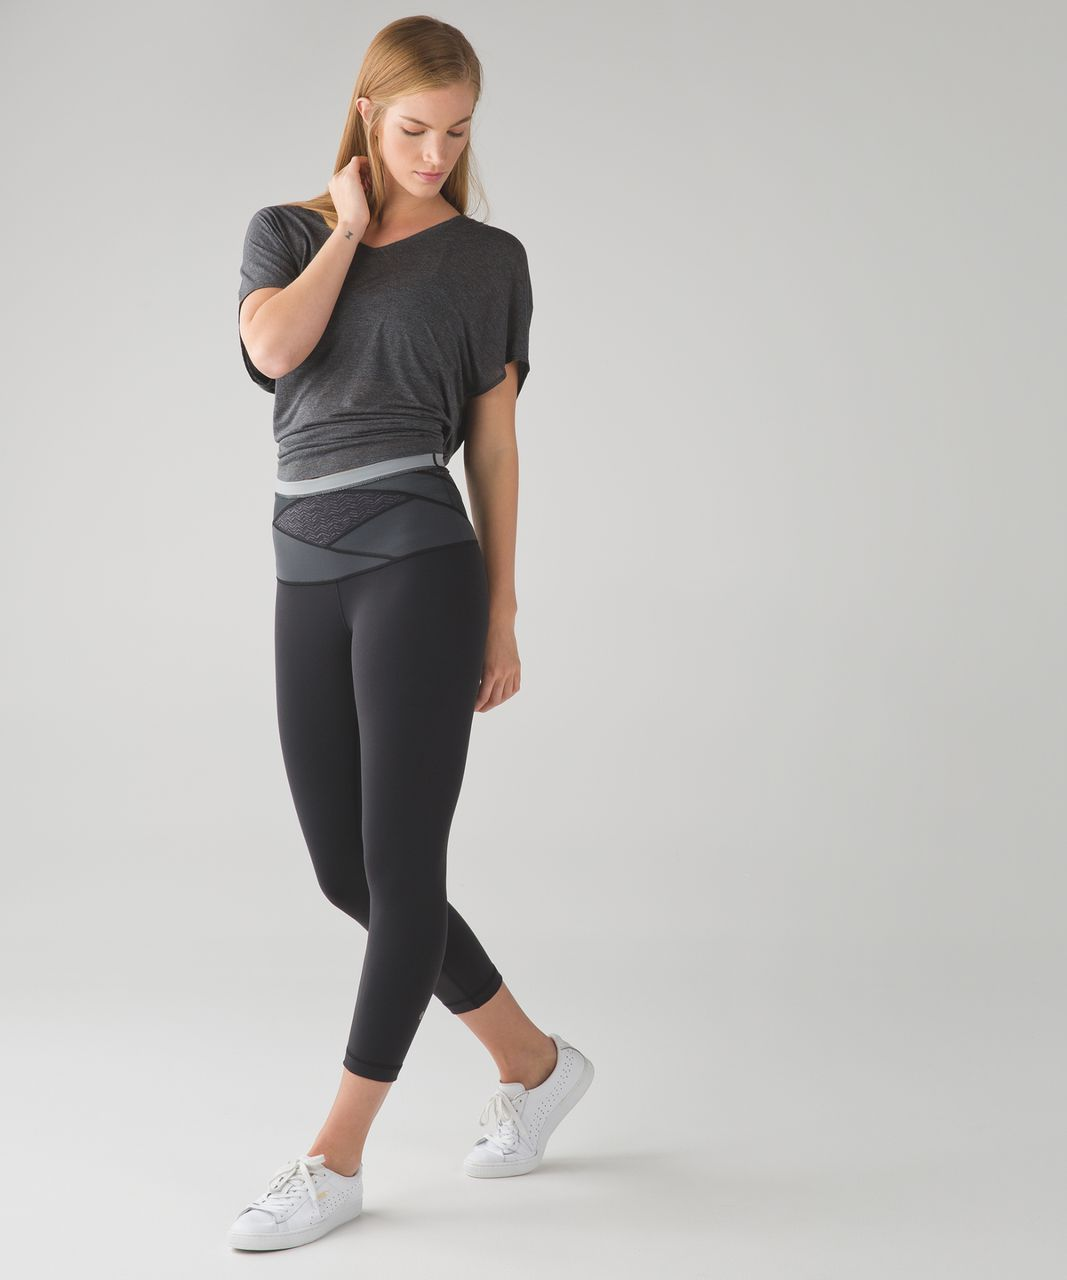 Lululemon Wunder Under Crop (Hi-Rise) (Full-On Luon) - Black / Irregular Spacebone Deep Coal Black / Battleship